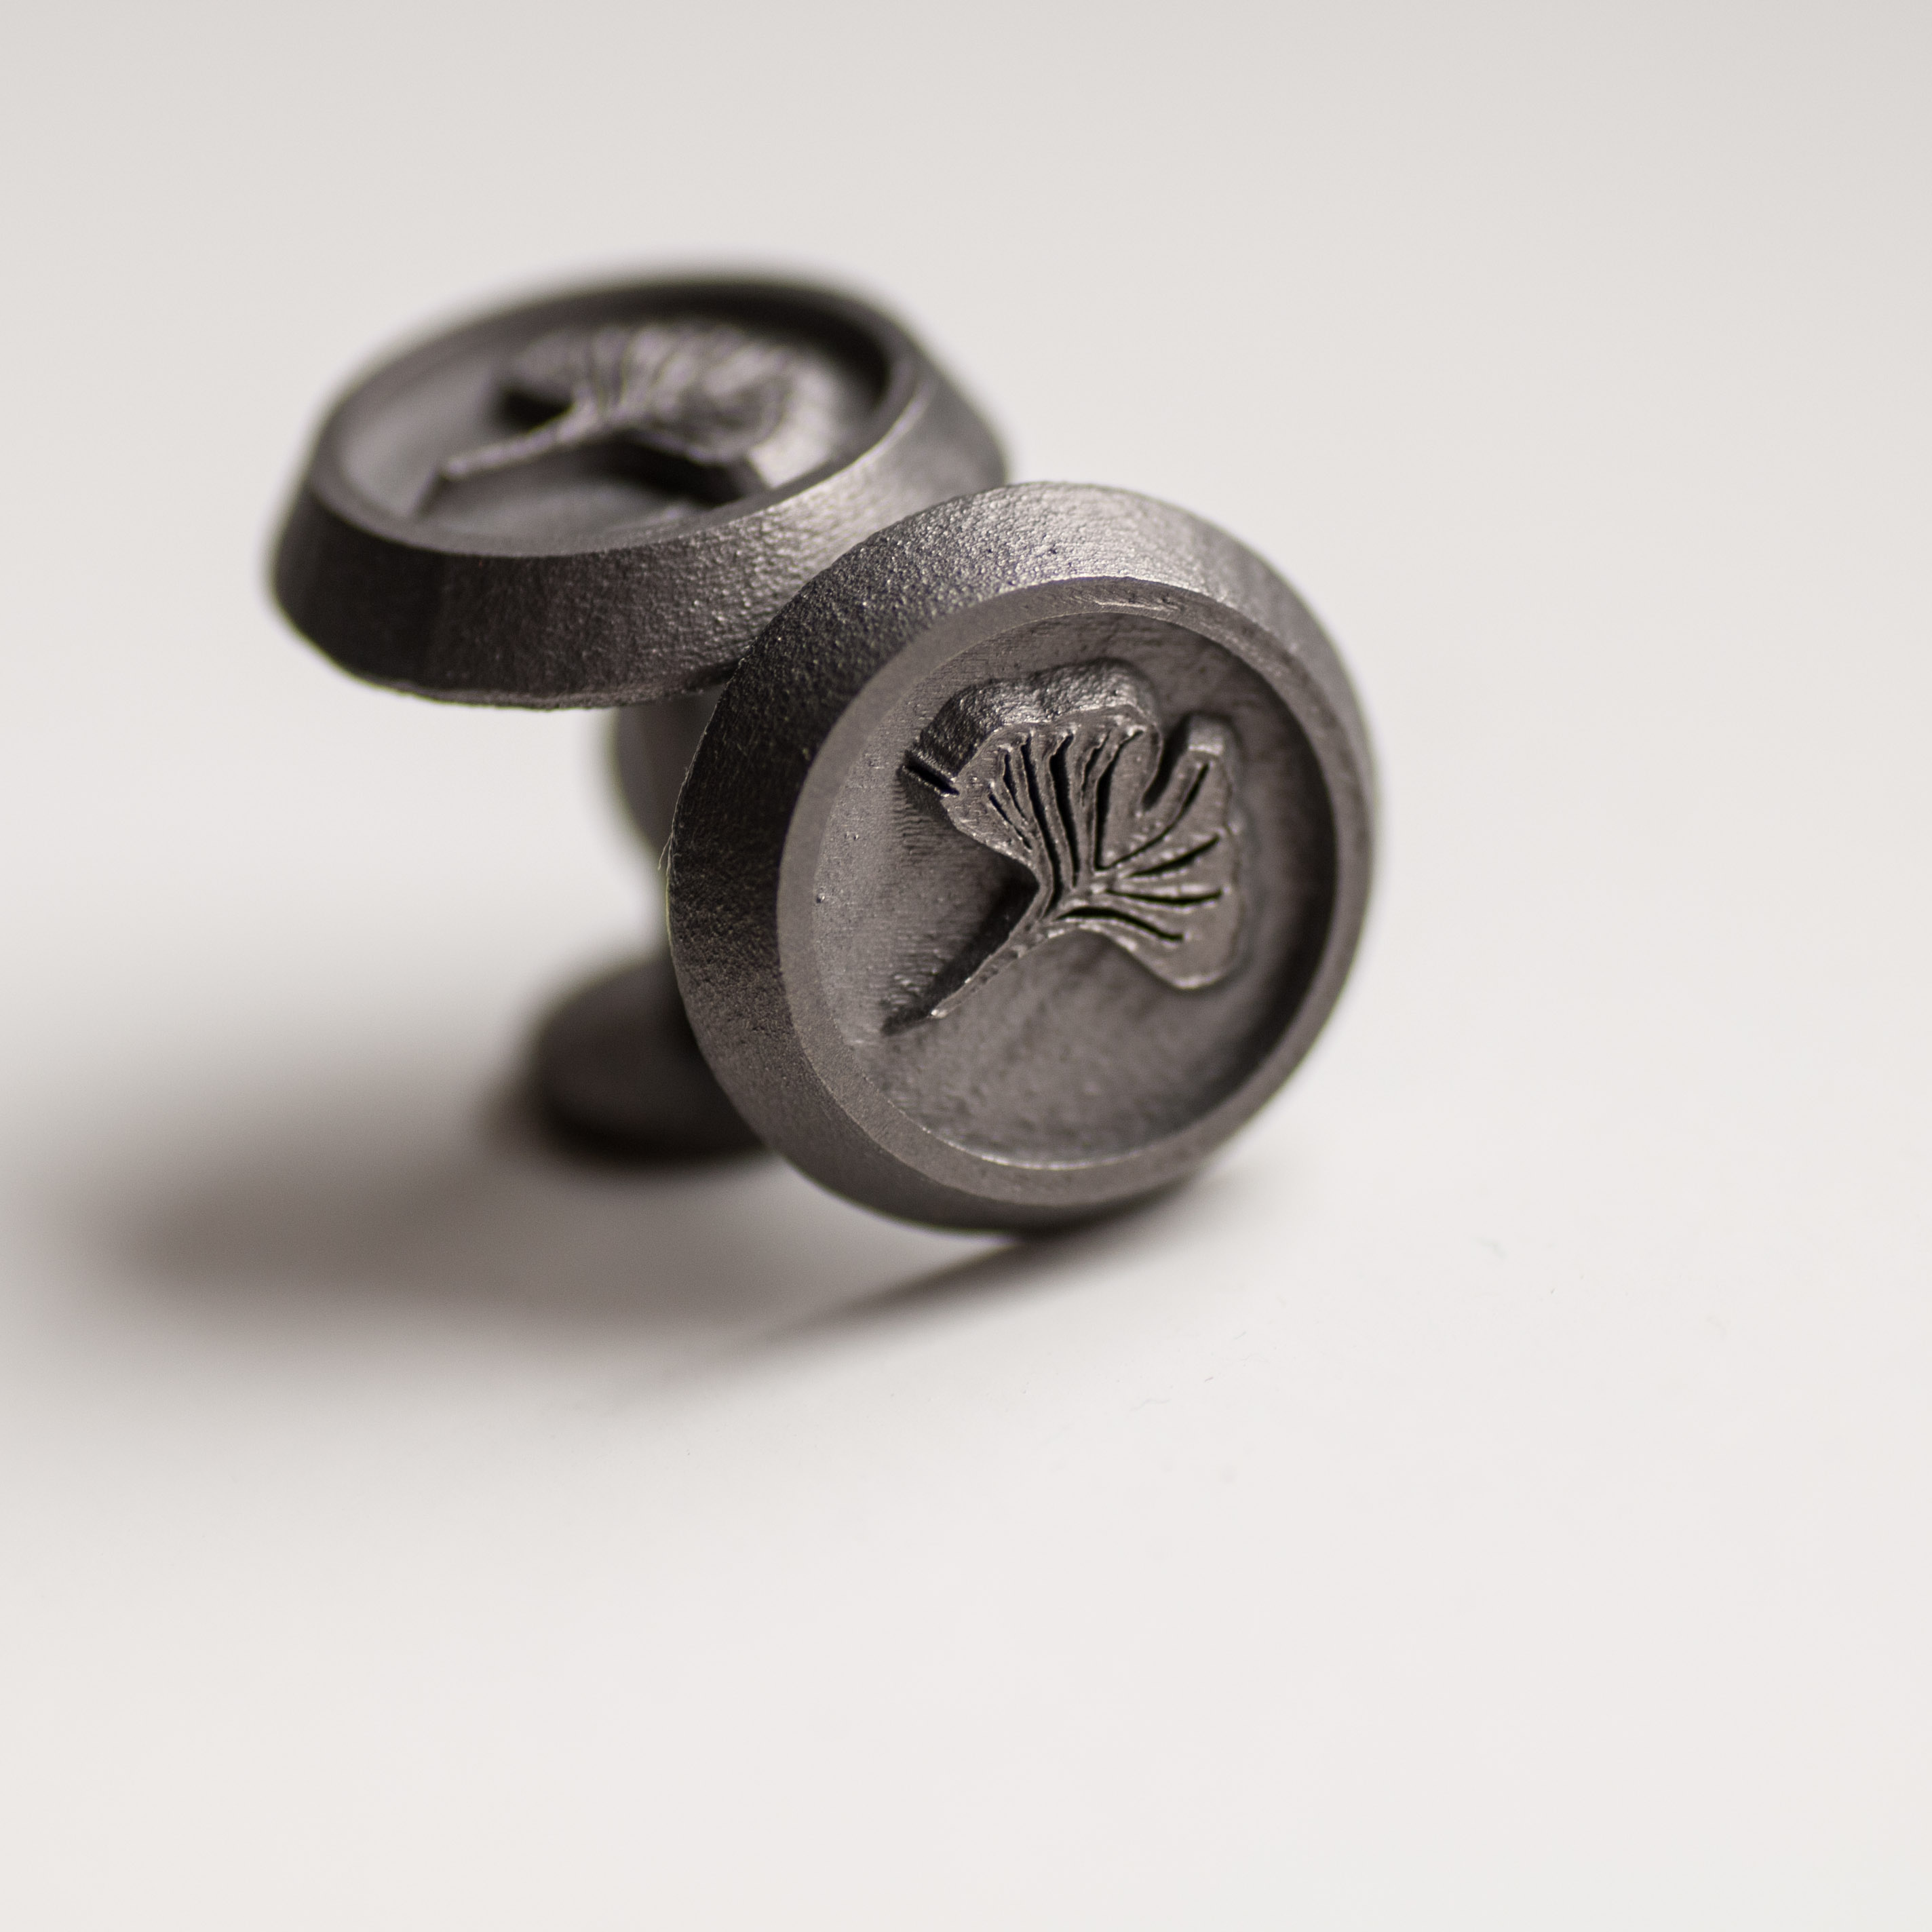 i.materialise for all your titanium 3D prints!